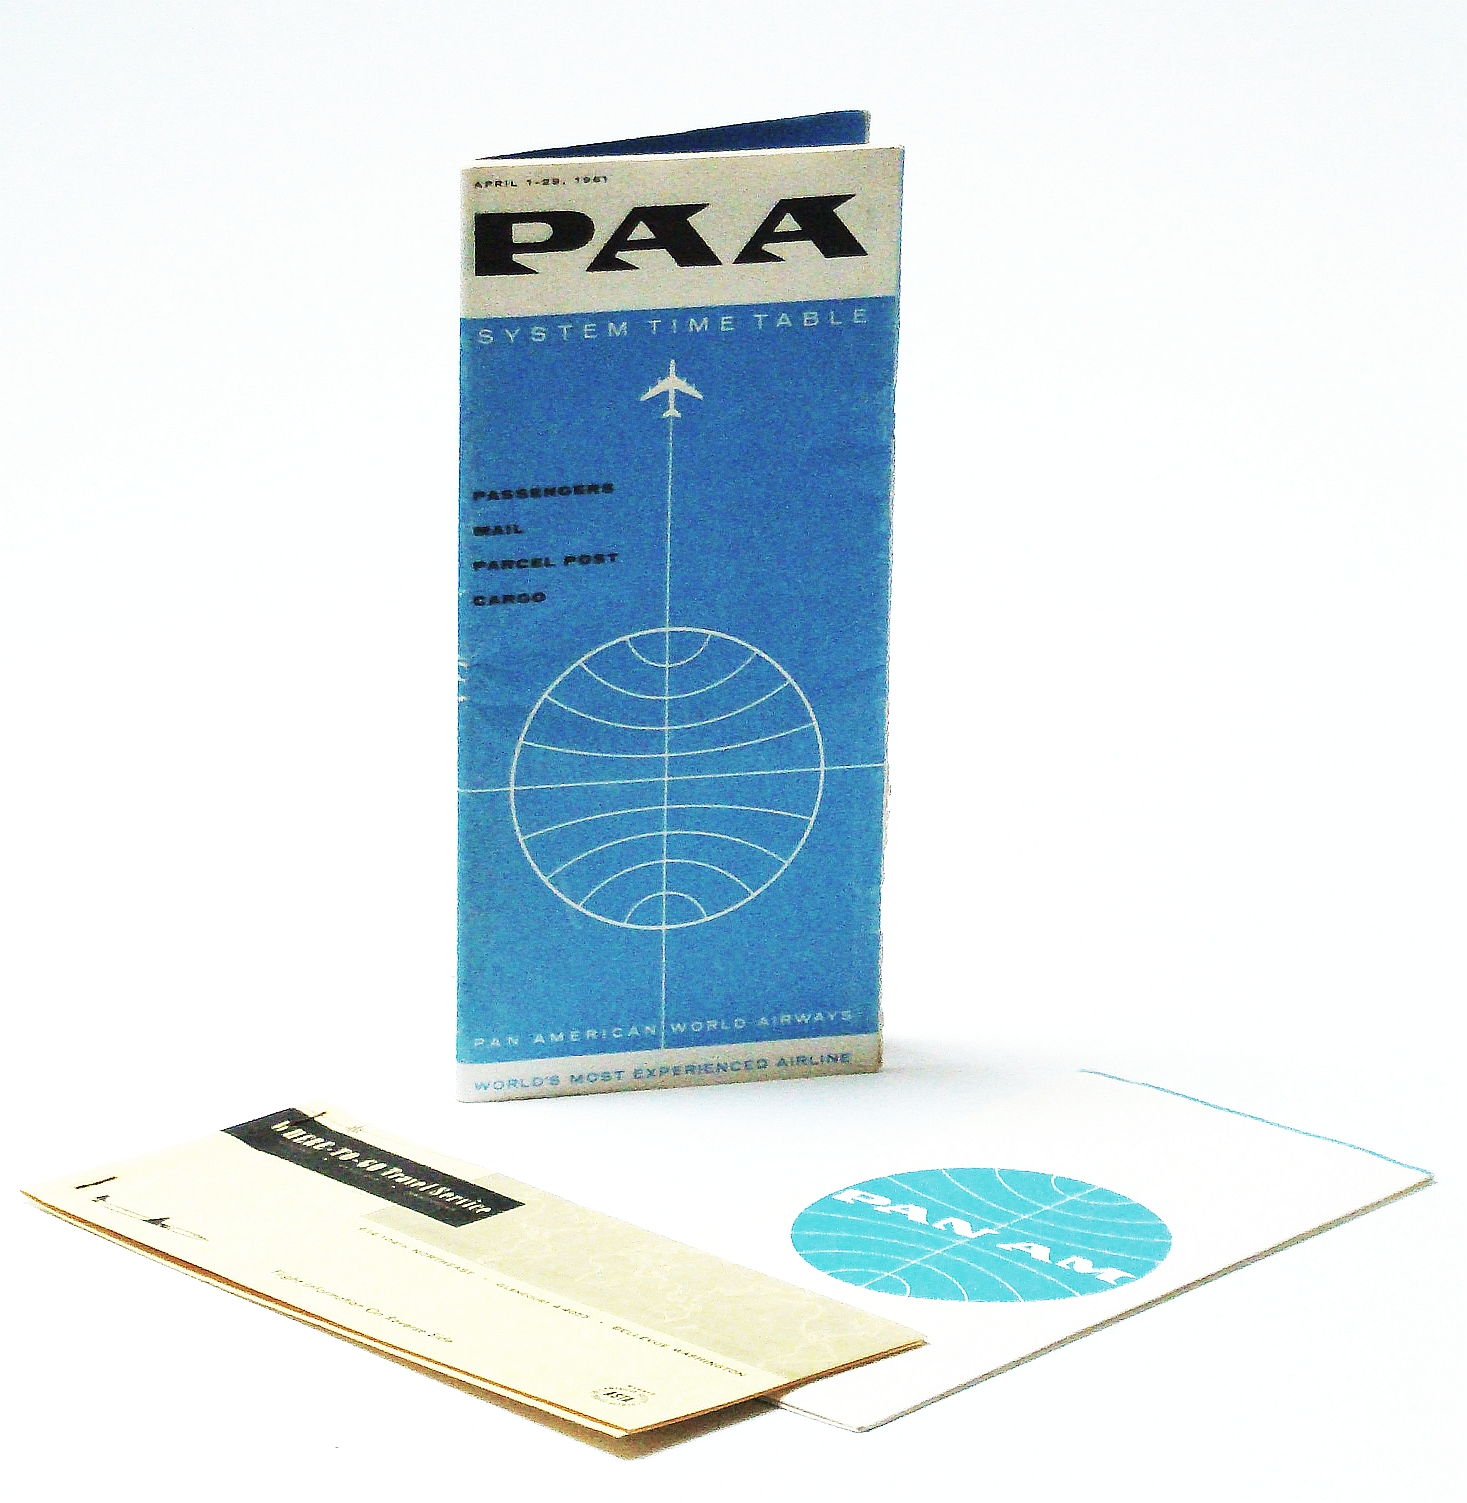 Image for 1961 Pan Am (Pan American World Airways) Timetable with Ticket Book and Wallet (3 pieces)